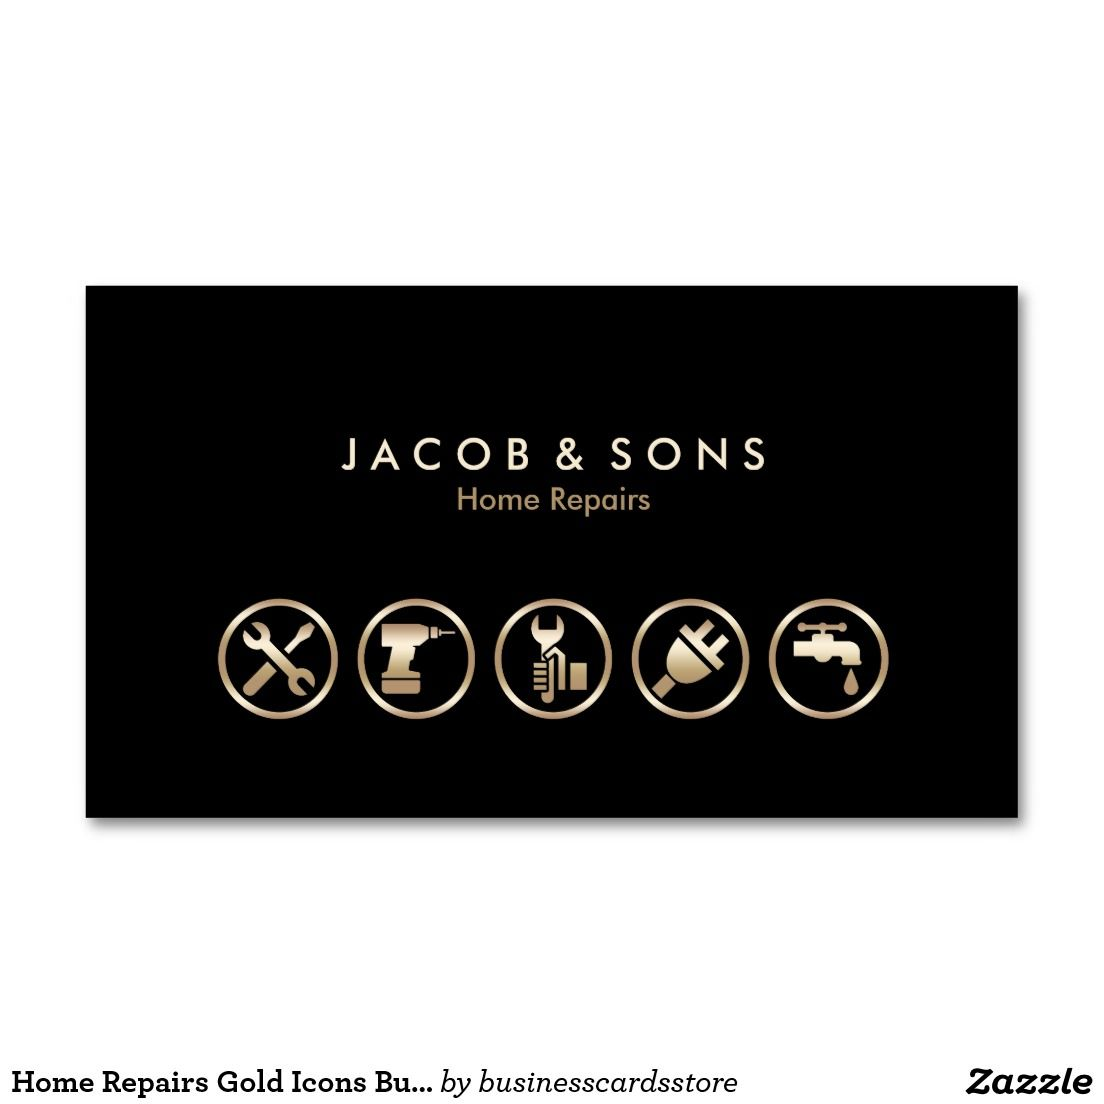 Home Repairs Gold Icons Business Card | Business cards, Icons and ...